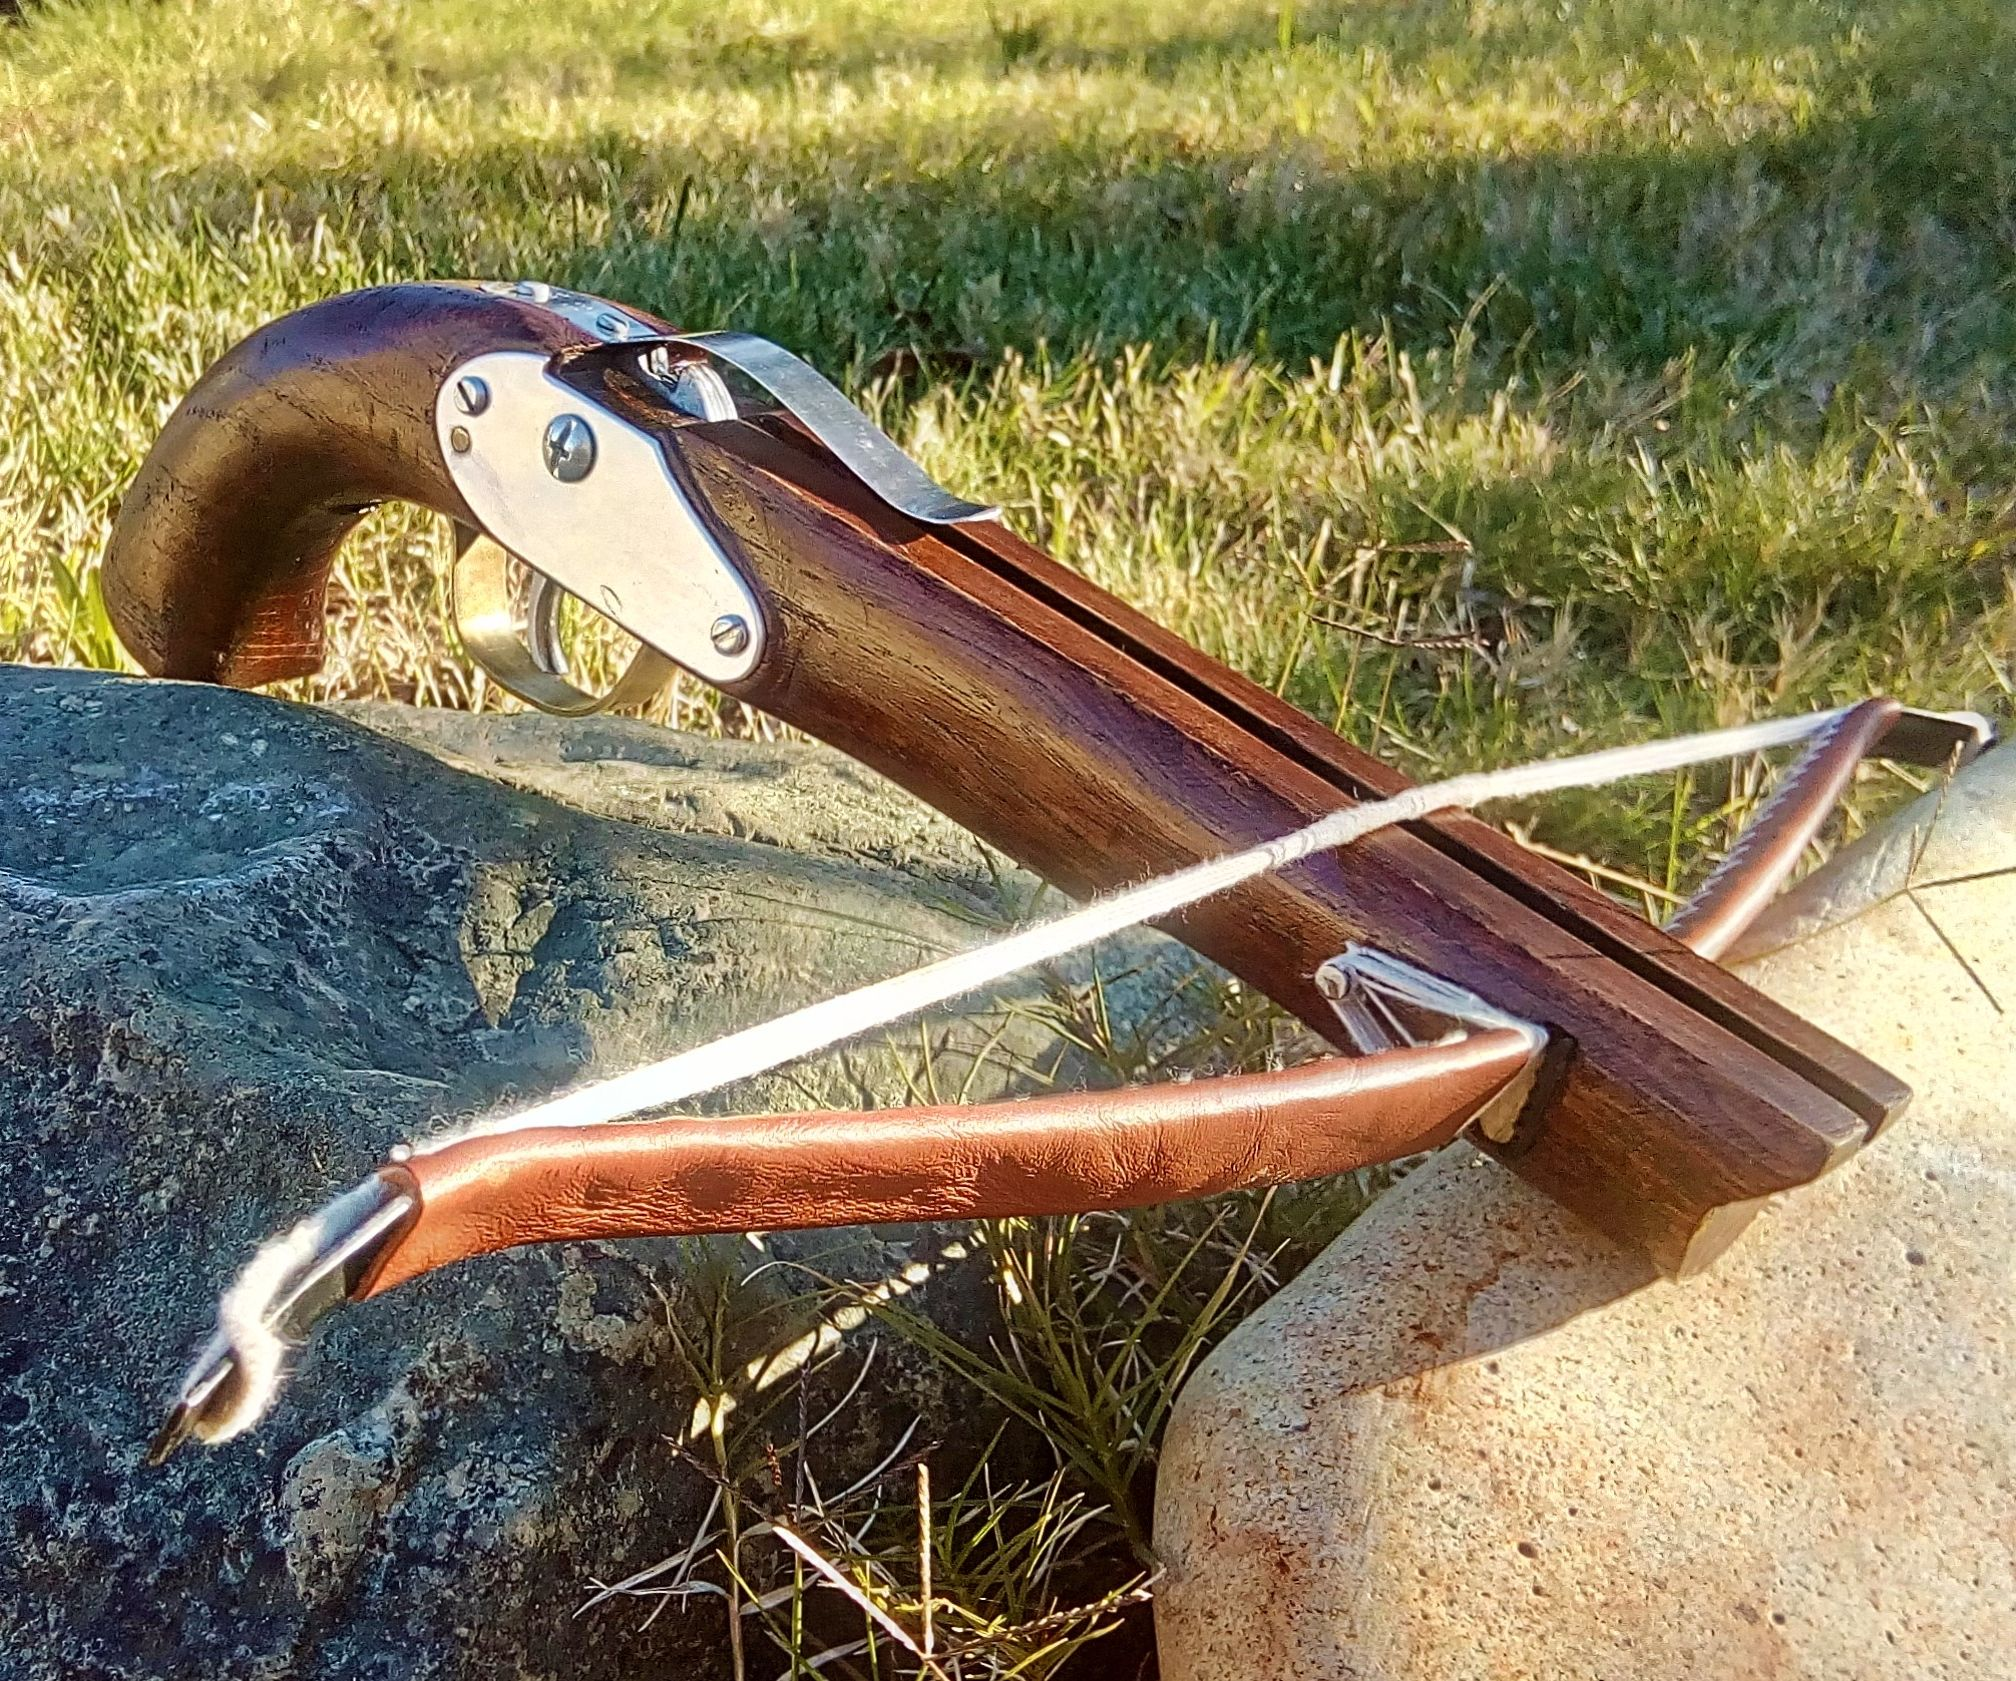 Make a hardwood Pistol Crossbow